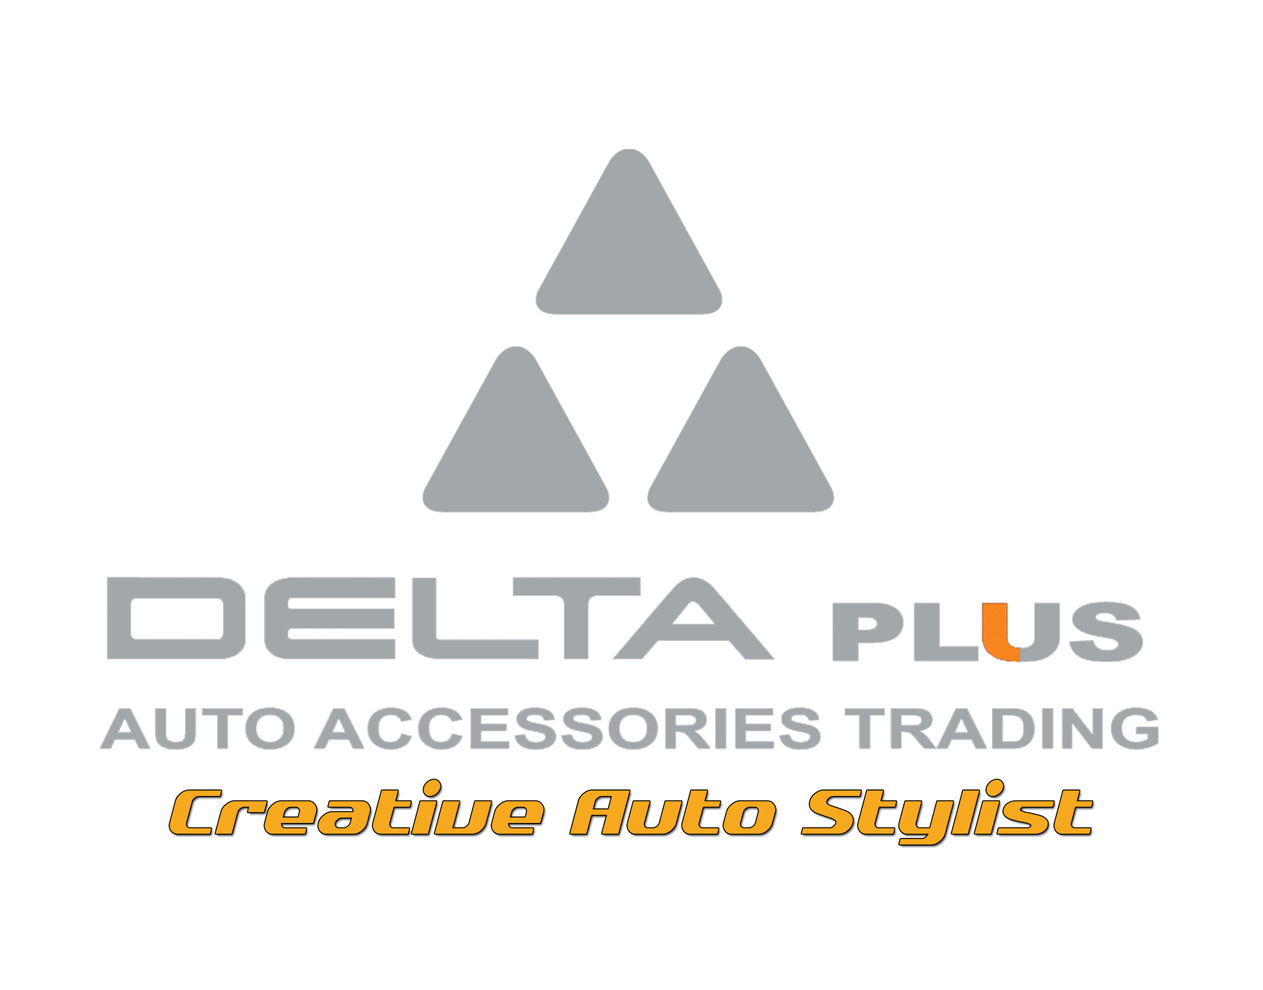 delta plus auto accessories dubai car accessories car parts dubai car interior accessories. Black Bedroom Furniture Sets. Home Design Ideas